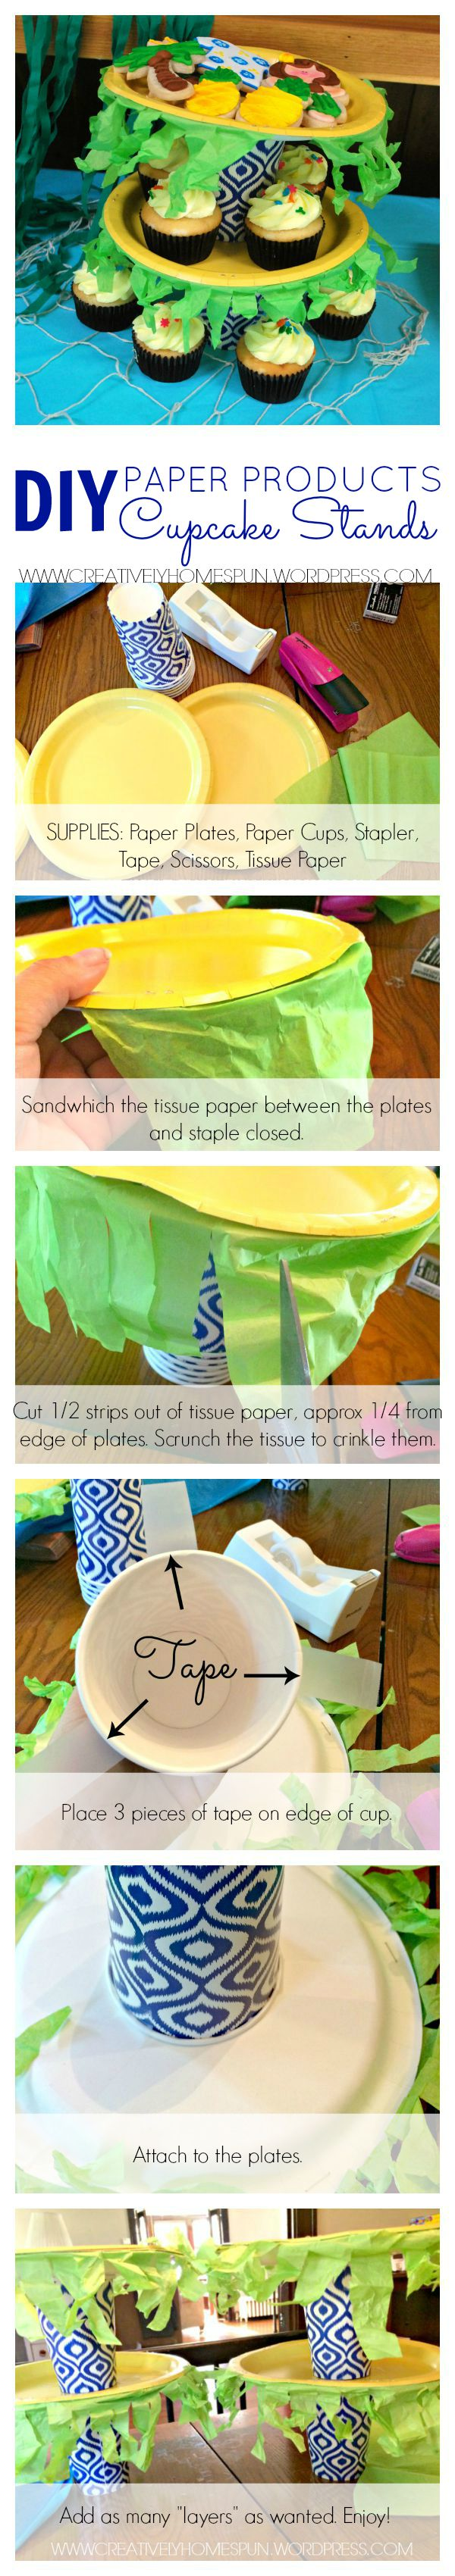 DIY Paper Products Cupcake Stands! These are super easy, and cost saving!! #partyplanning #cupcakes #DIY